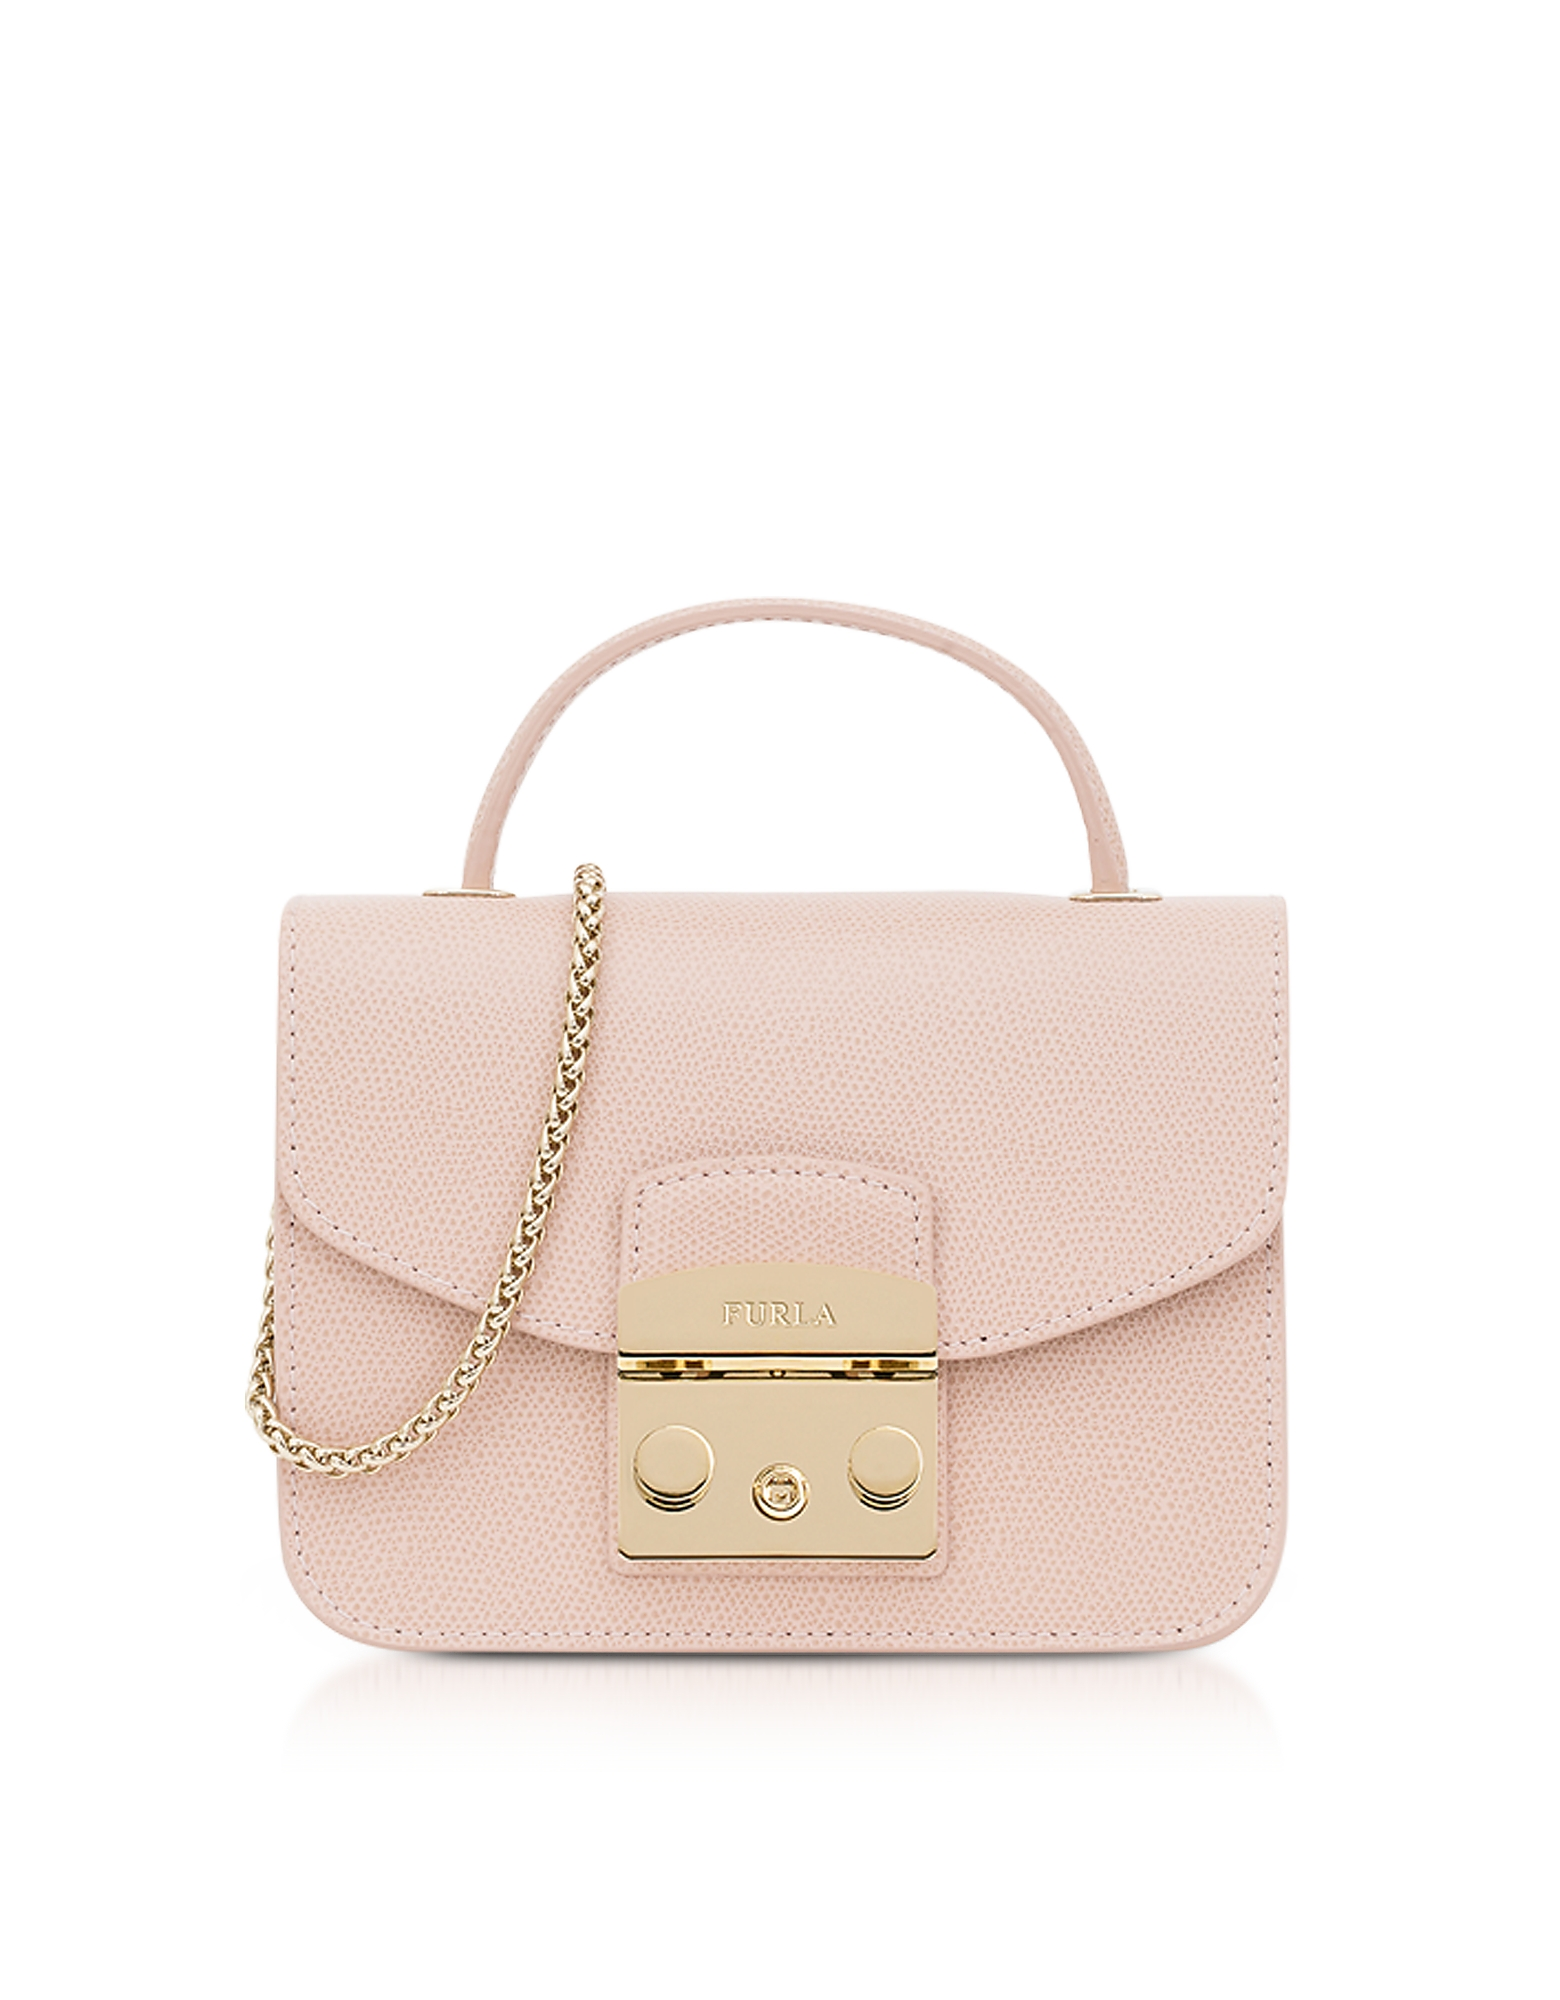 Furla Handbags, Moonstone Metropolis Mini Top Handle Crossbody Bag